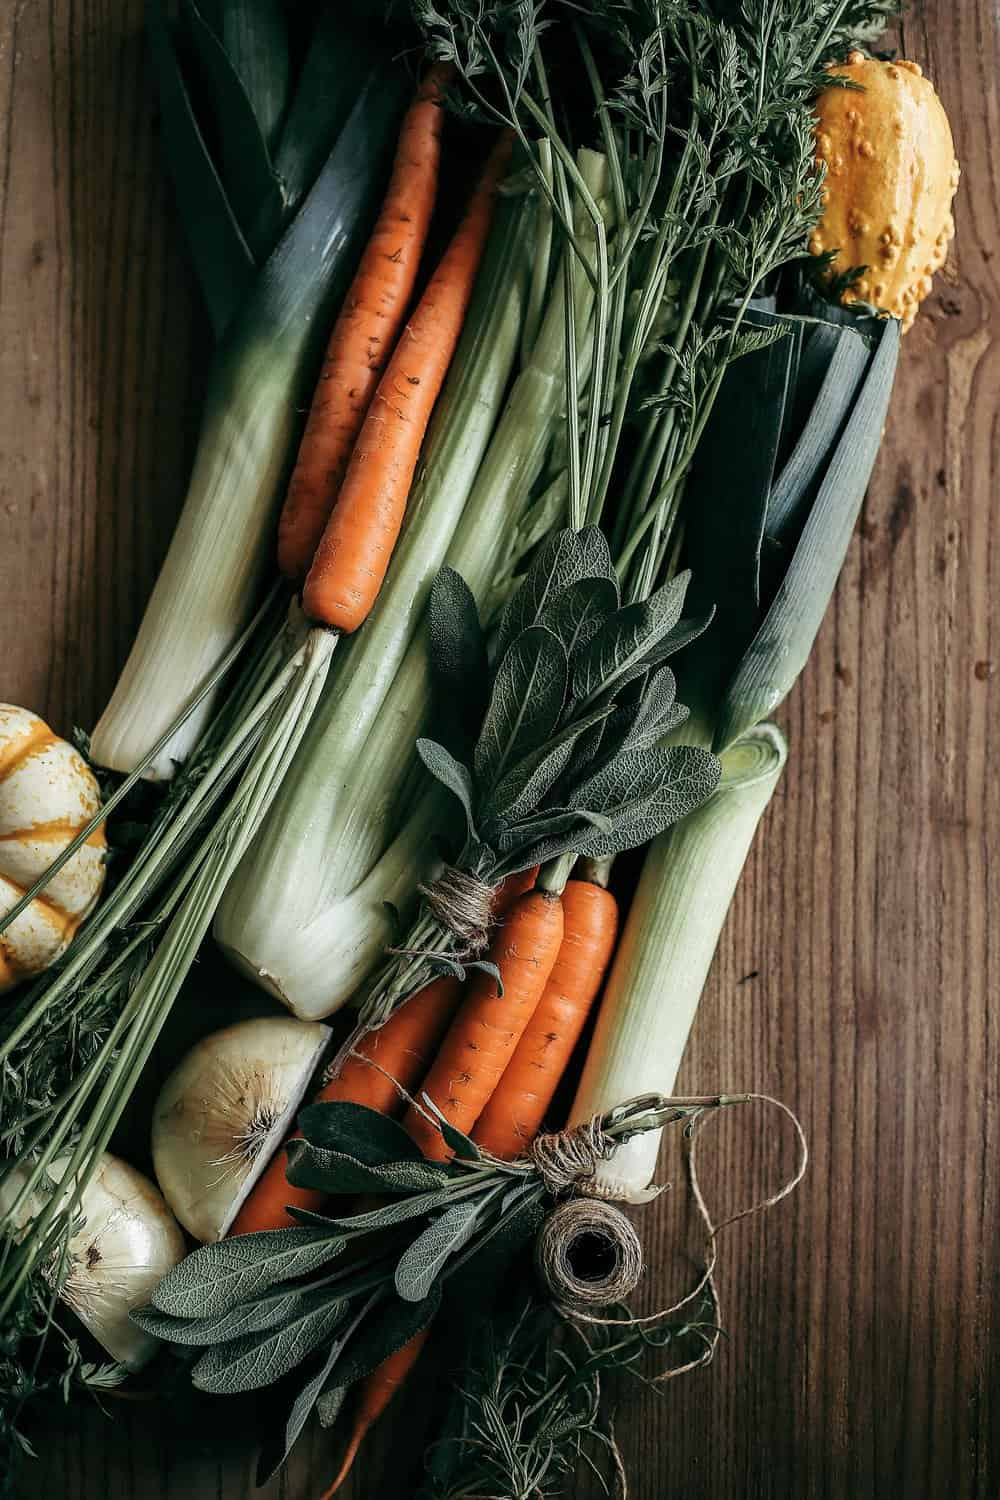 Celery, carrots, leeks, onion, and sage on a wooden cutting board.